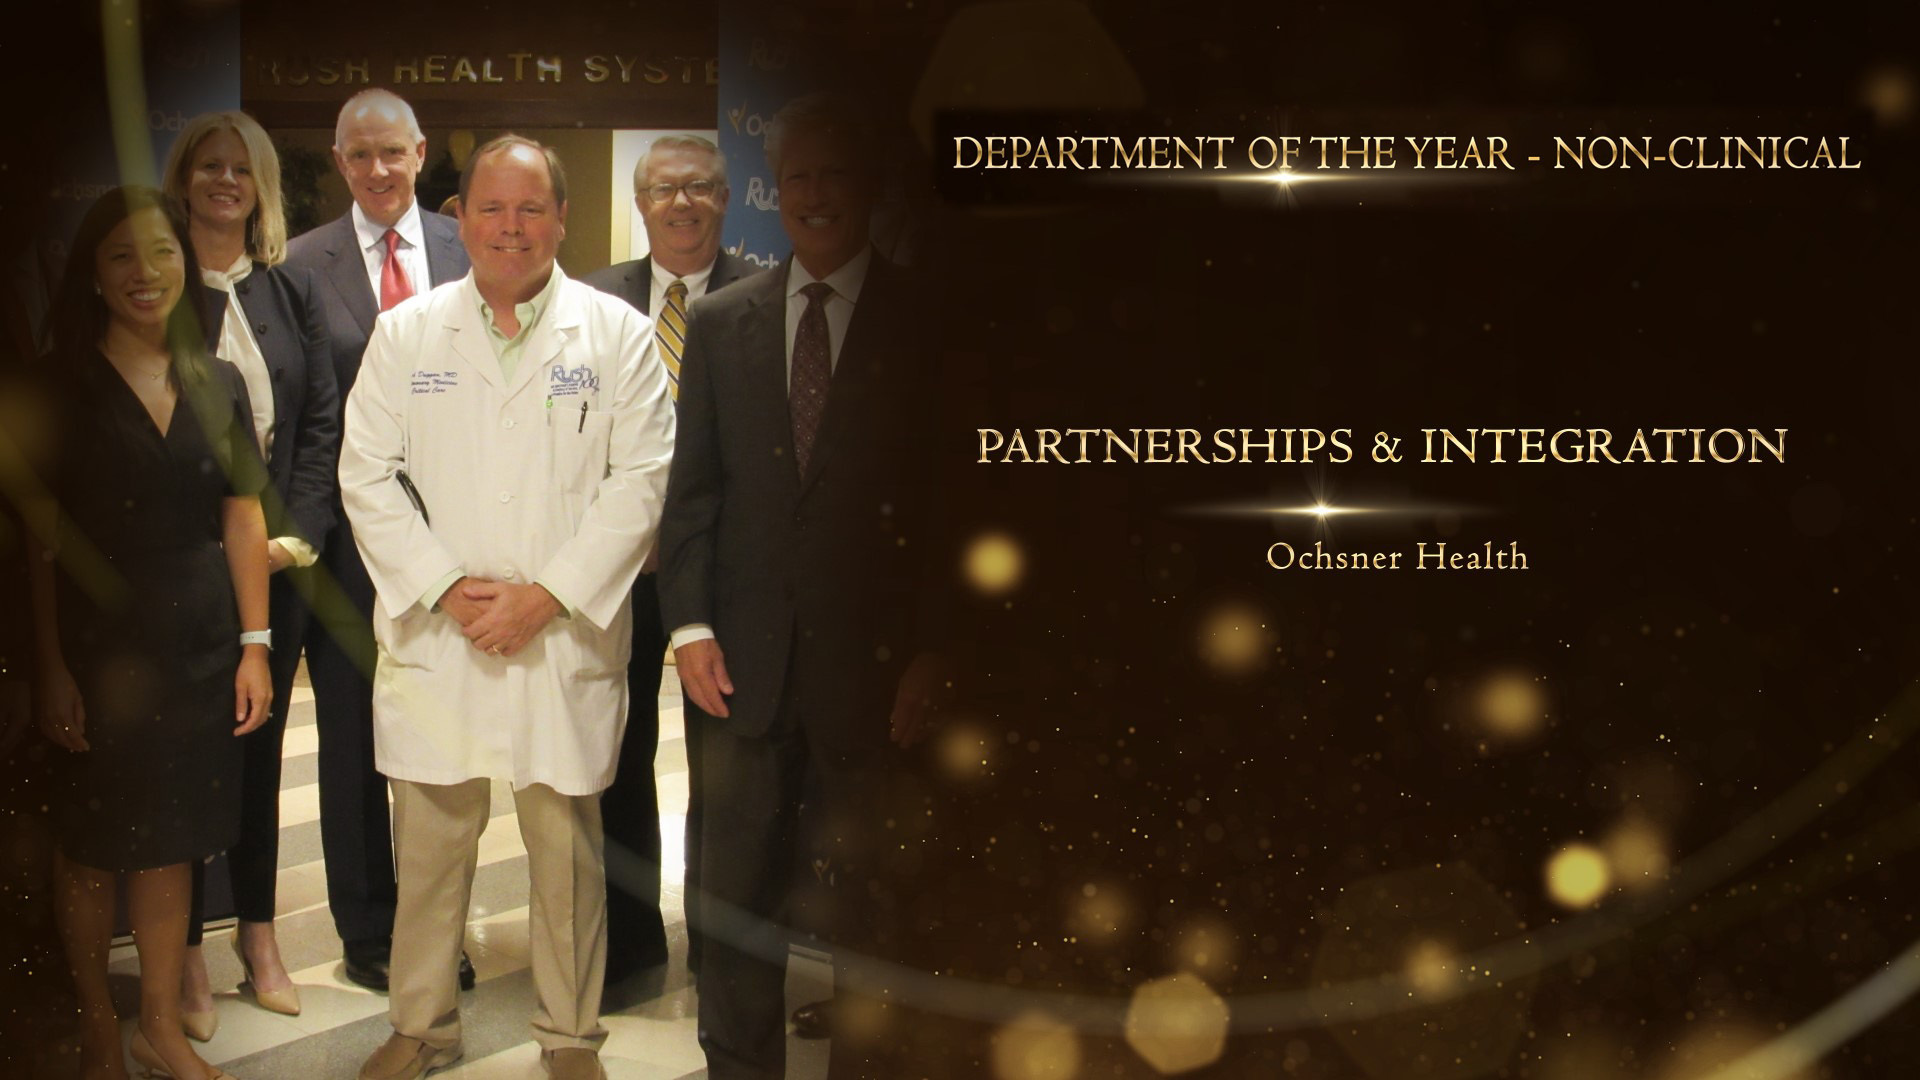 SOL Department of the Year Non Clinical ae NOM 1 2020 06 19 12 20 27